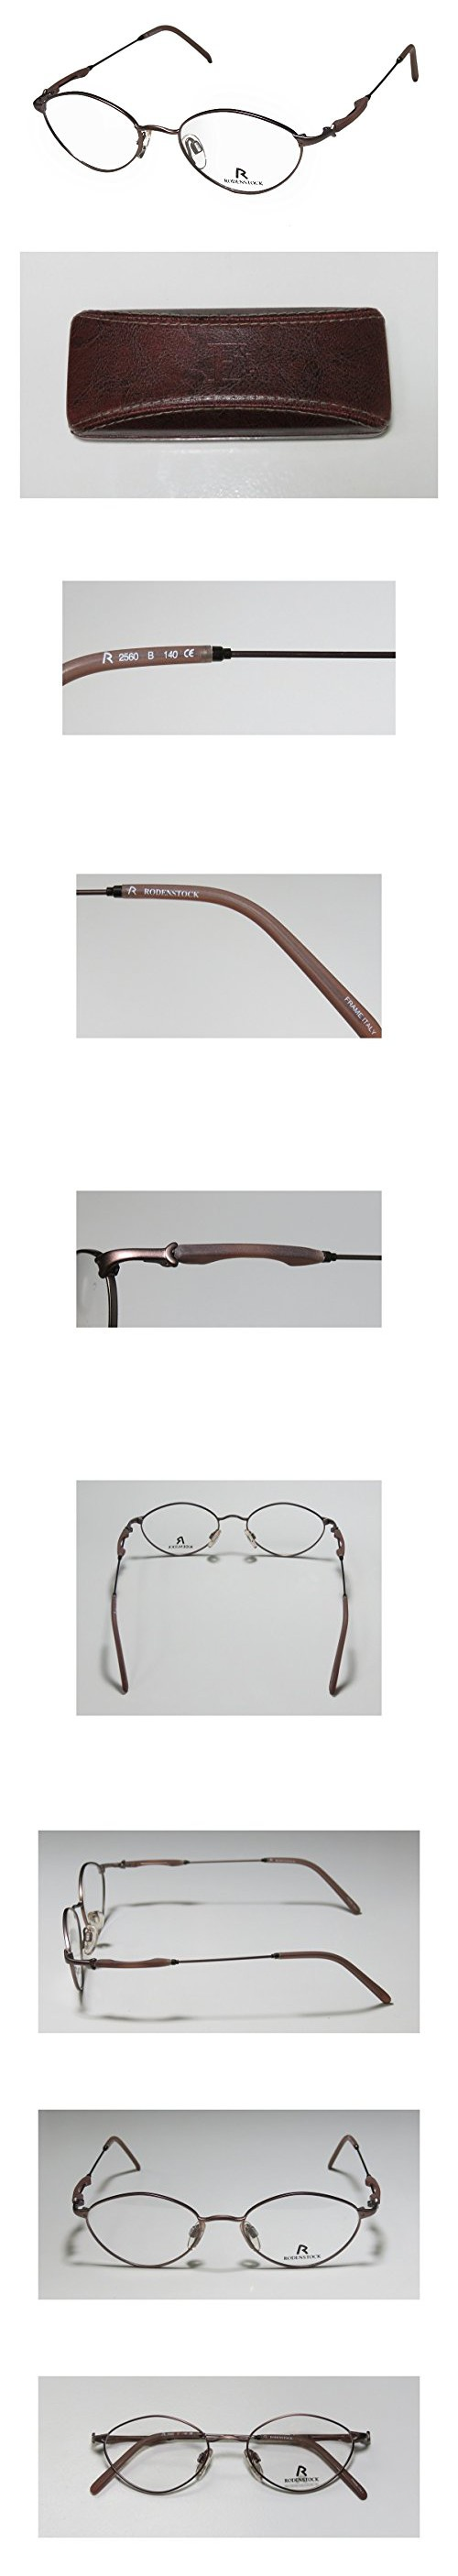 a365fcd3f9b Rodenstock R2560 Mens Womens Ophthalmic New Collection Designer Full-rim  Eyeglasses Eye Glasses